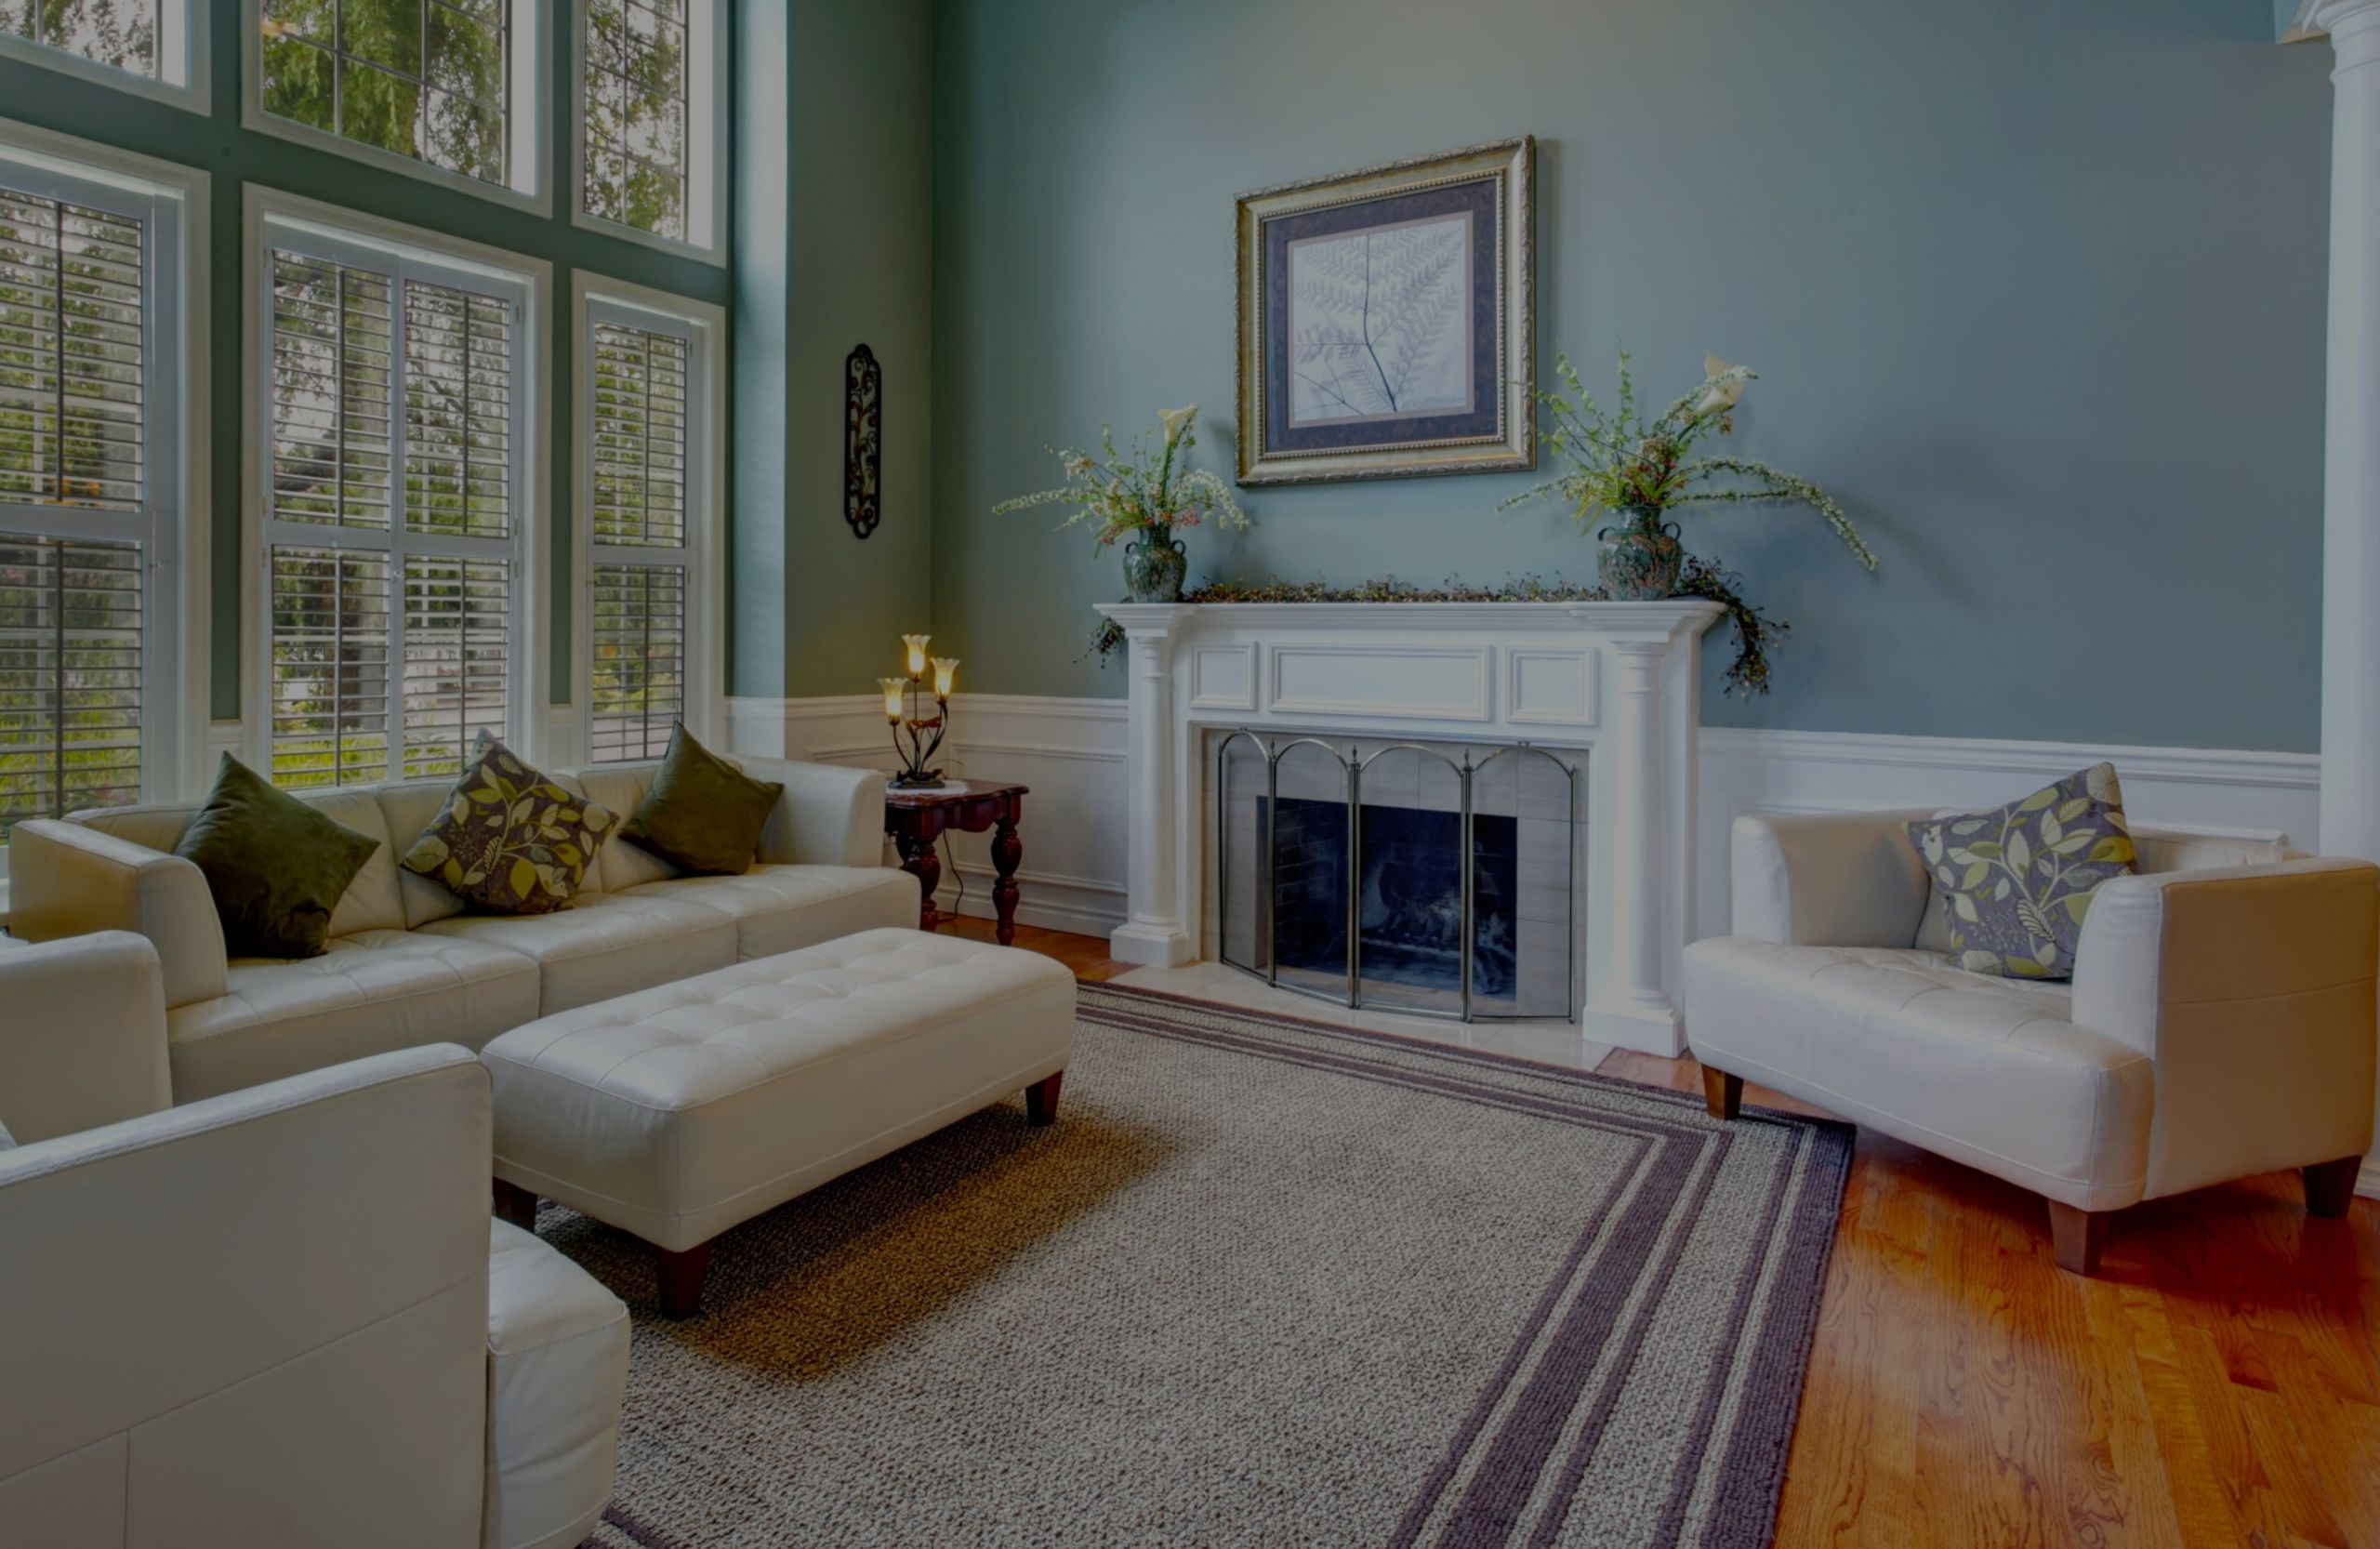 Prepare yourself for the home staging